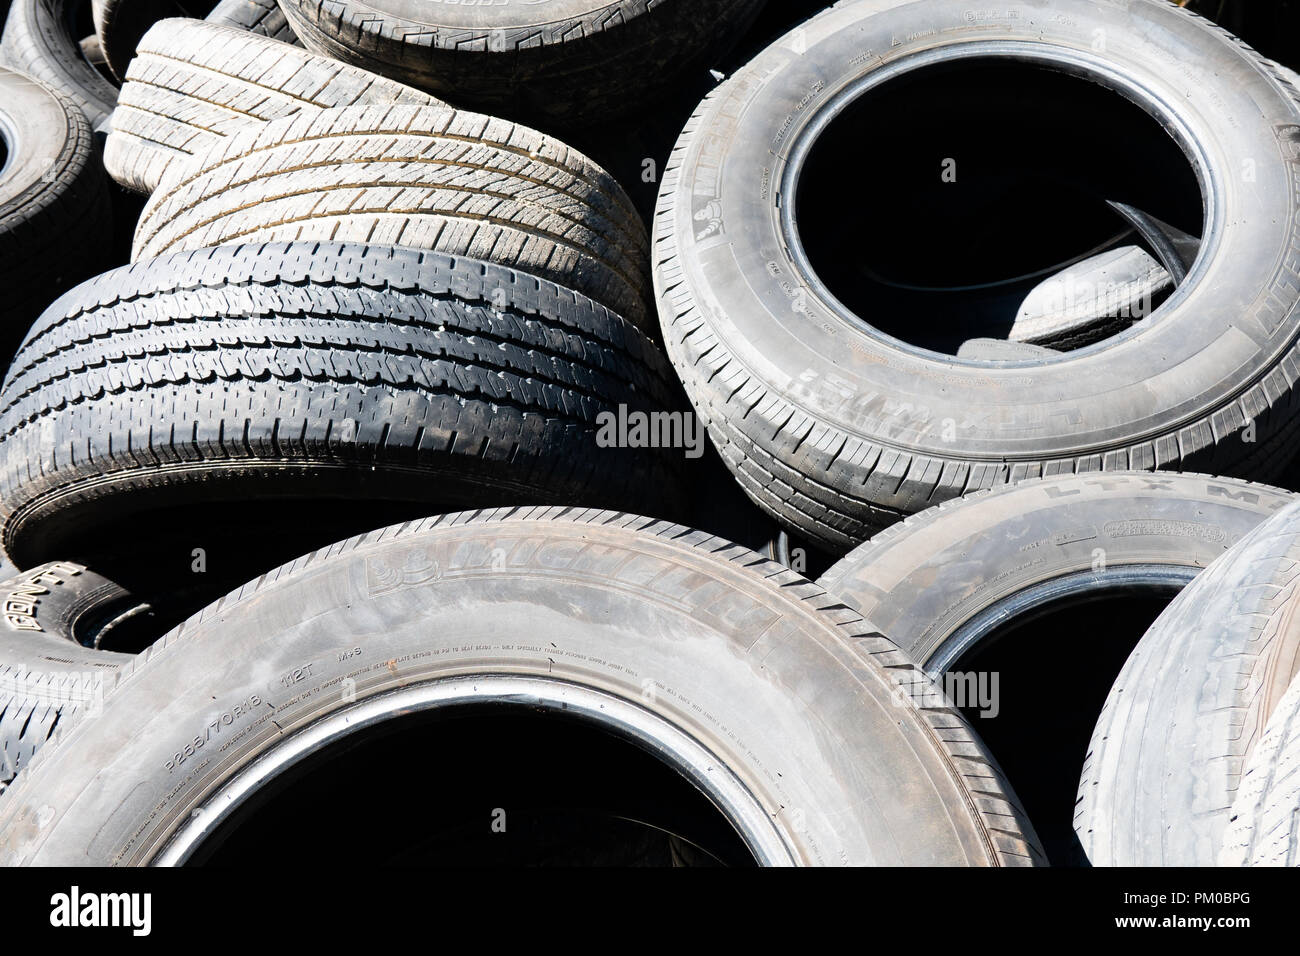 A pile of used worn discarded tires for recycling in Upstate New York, USA. - Stock Image